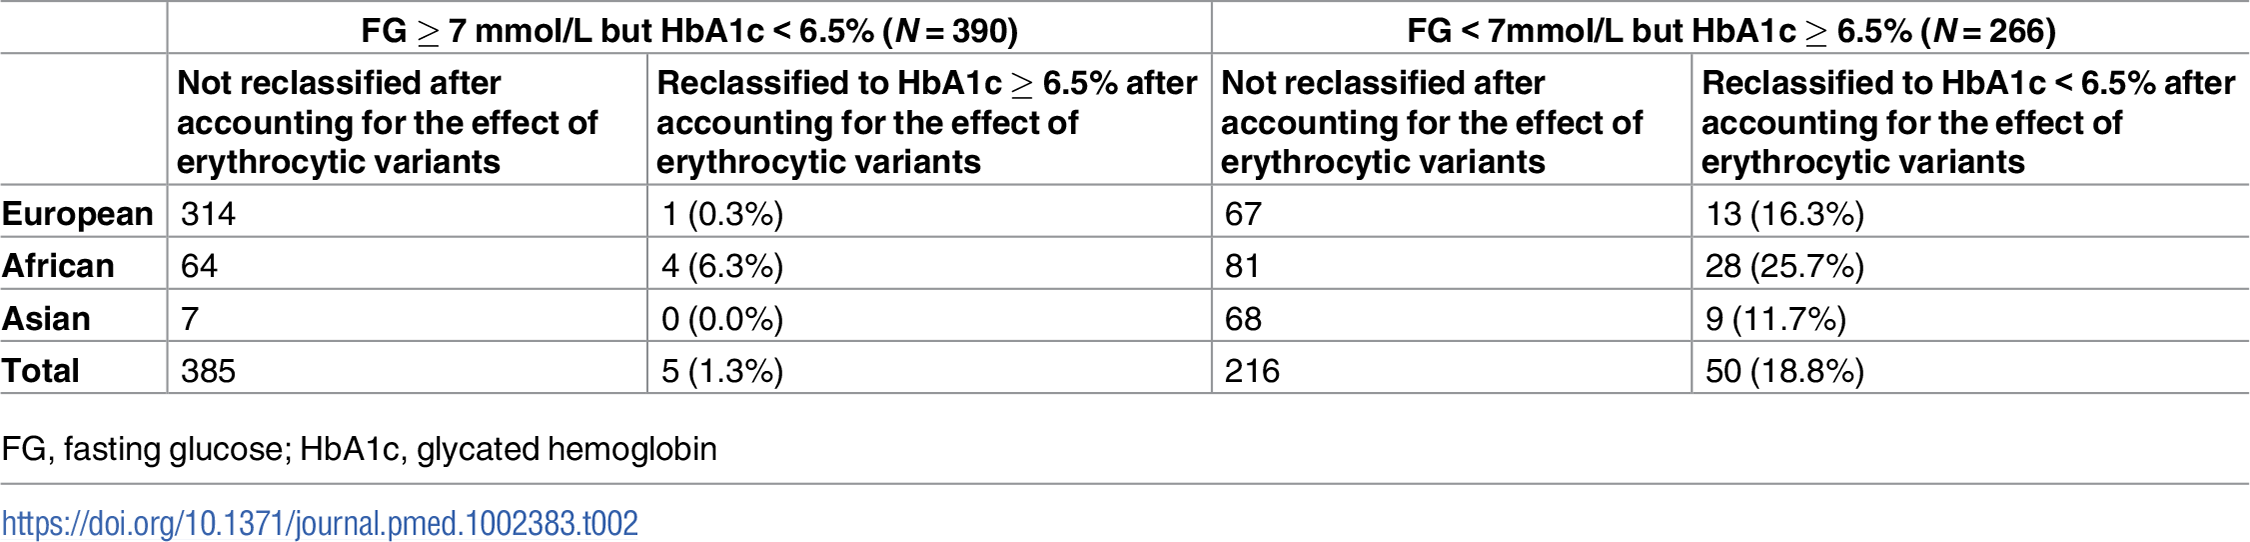 Reclassification of individuals with discordant T2D status based on prevailing diagnostic thresholds for FG and HbA1c before and after accounting for the effect of erythrocytic variants.